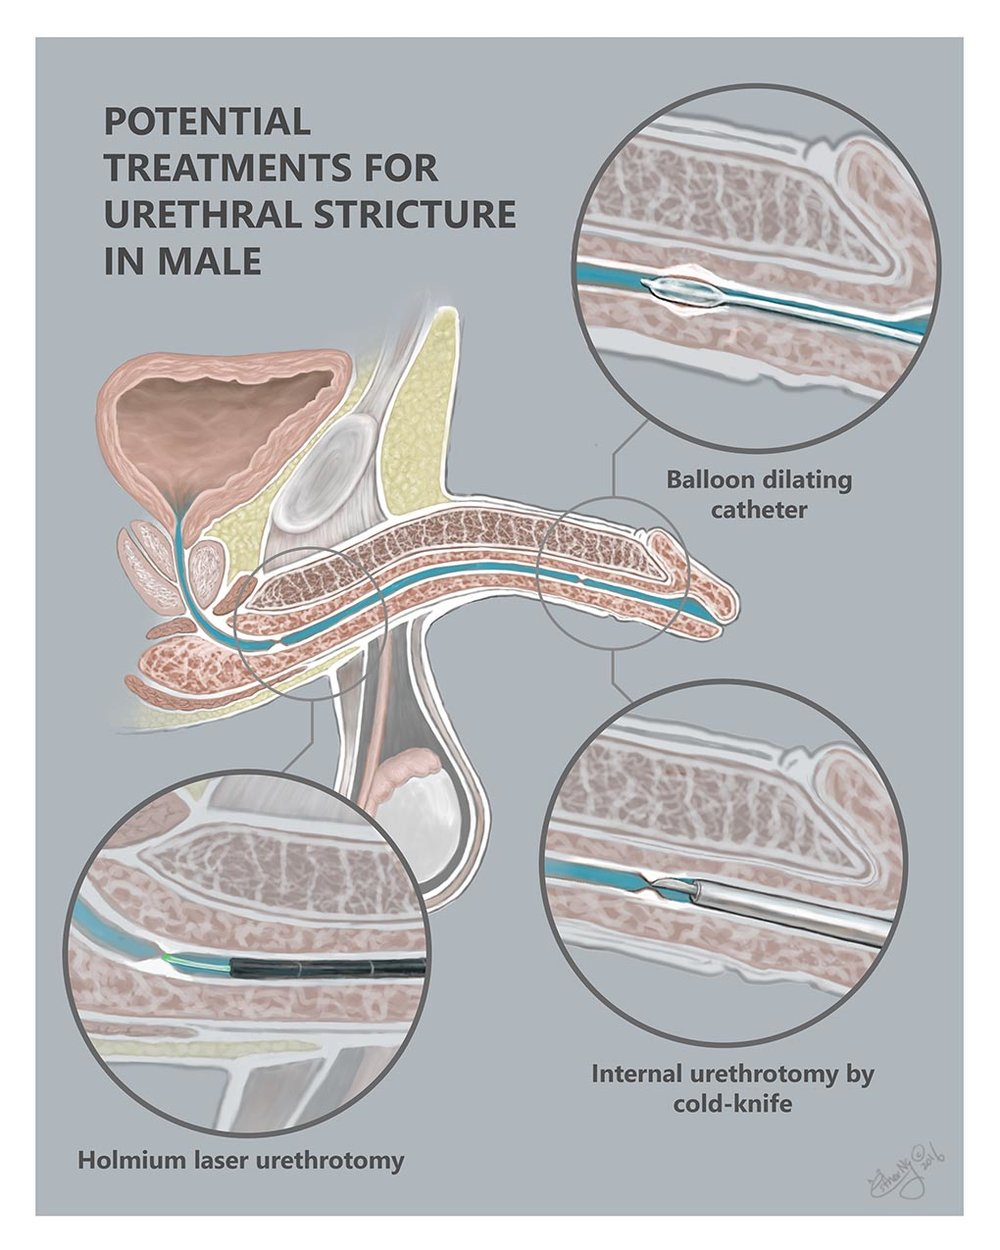 Potential Treatments for Urethral Stricture in Male This is an educational piece created for the Urology Department at the UIC hospital aimed to provide the patient with an understanding of the different types of treatment in relation to the location to the stricture.